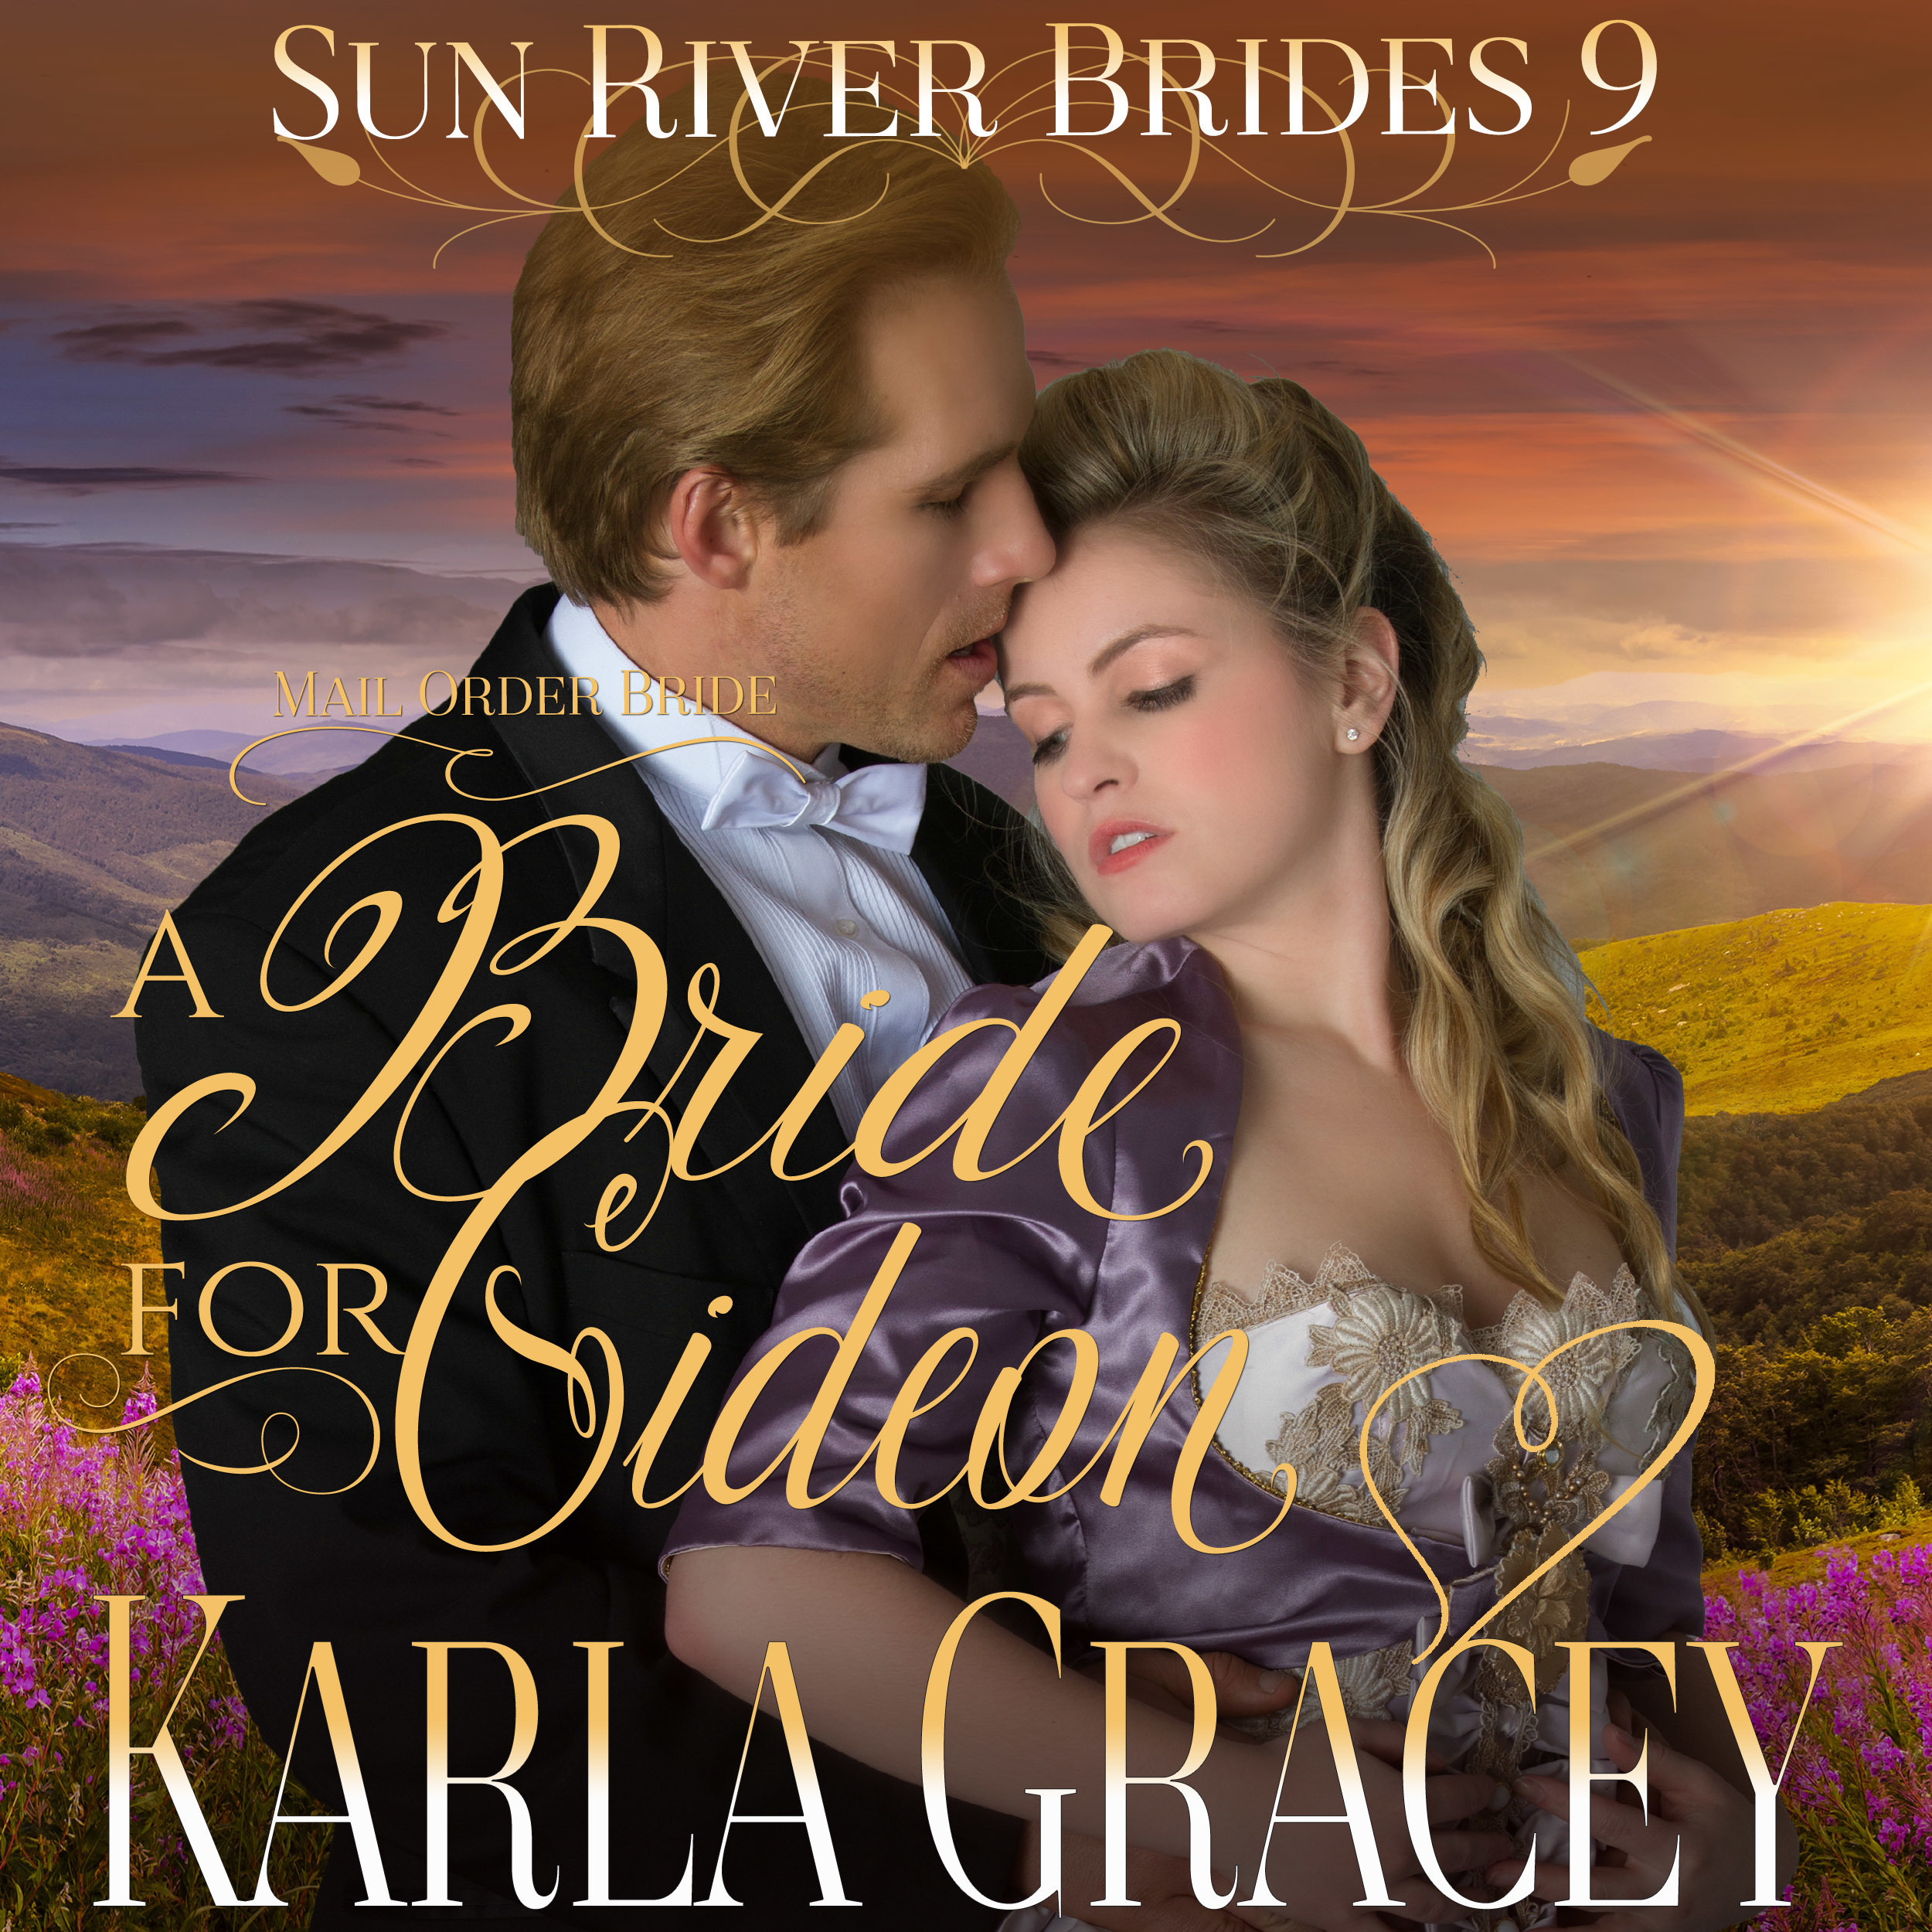 Printable Mail Order Bride - A Bride for Gideon Audiobook Cover Art